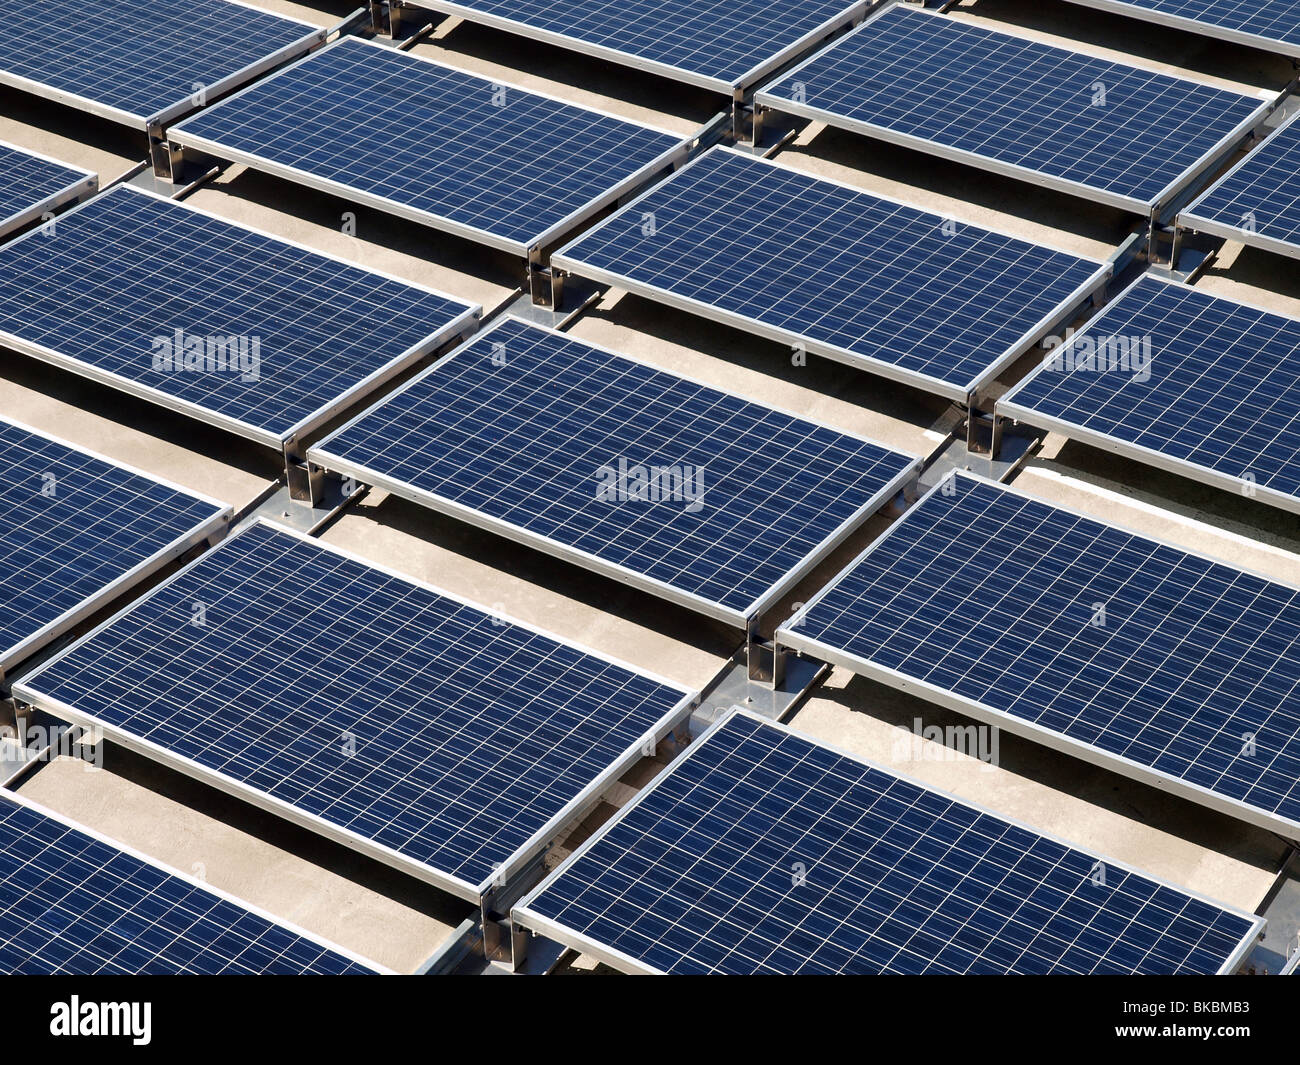 Photovoltaic solar panels on a concrete rooftop. - Stock Image